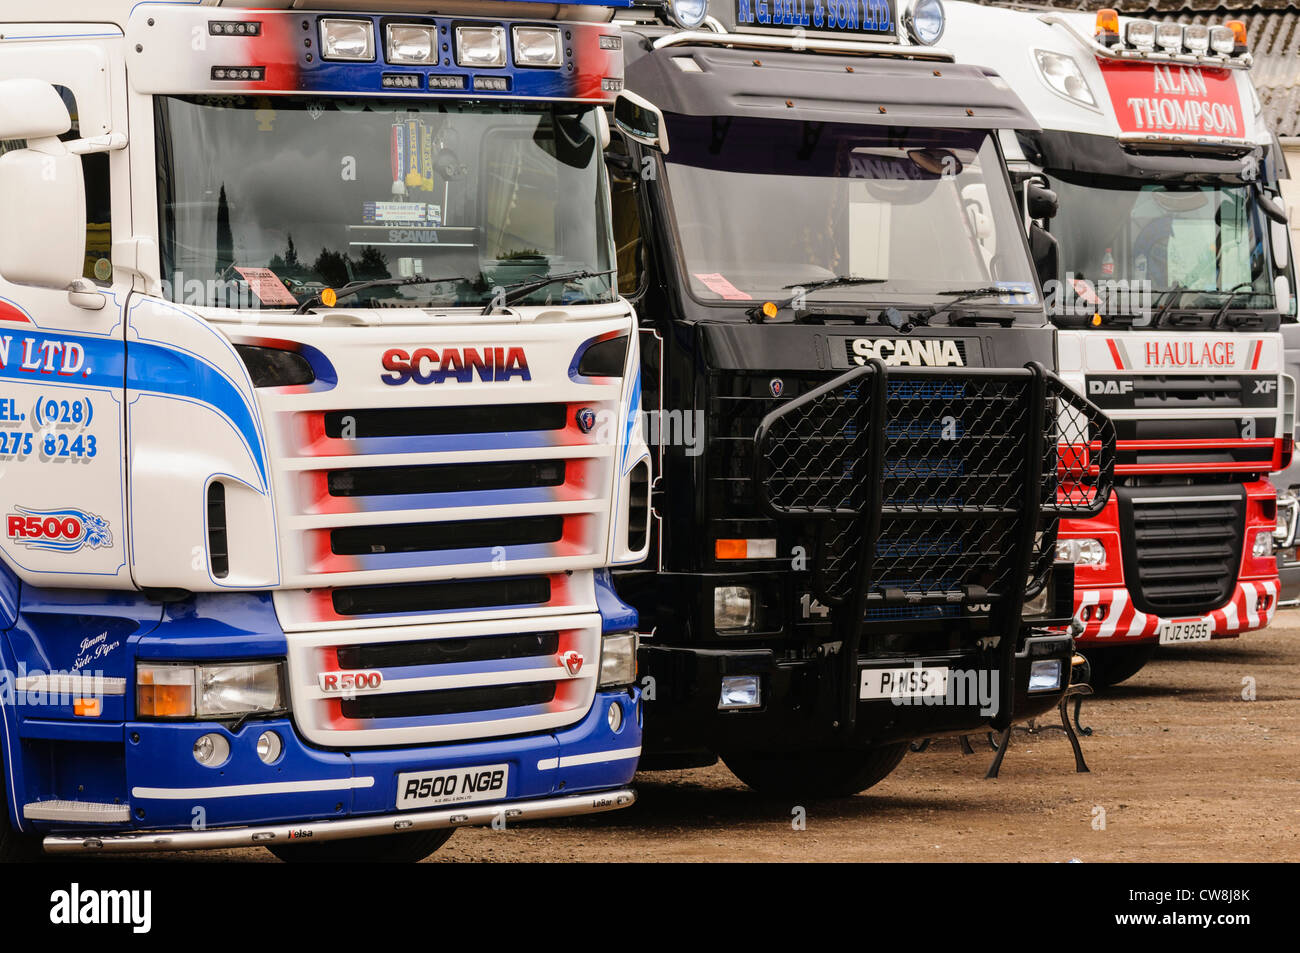 Daf Scania Two Scania R500 Lorries Trucks And One Daf Xf Lorry Parked Up In A